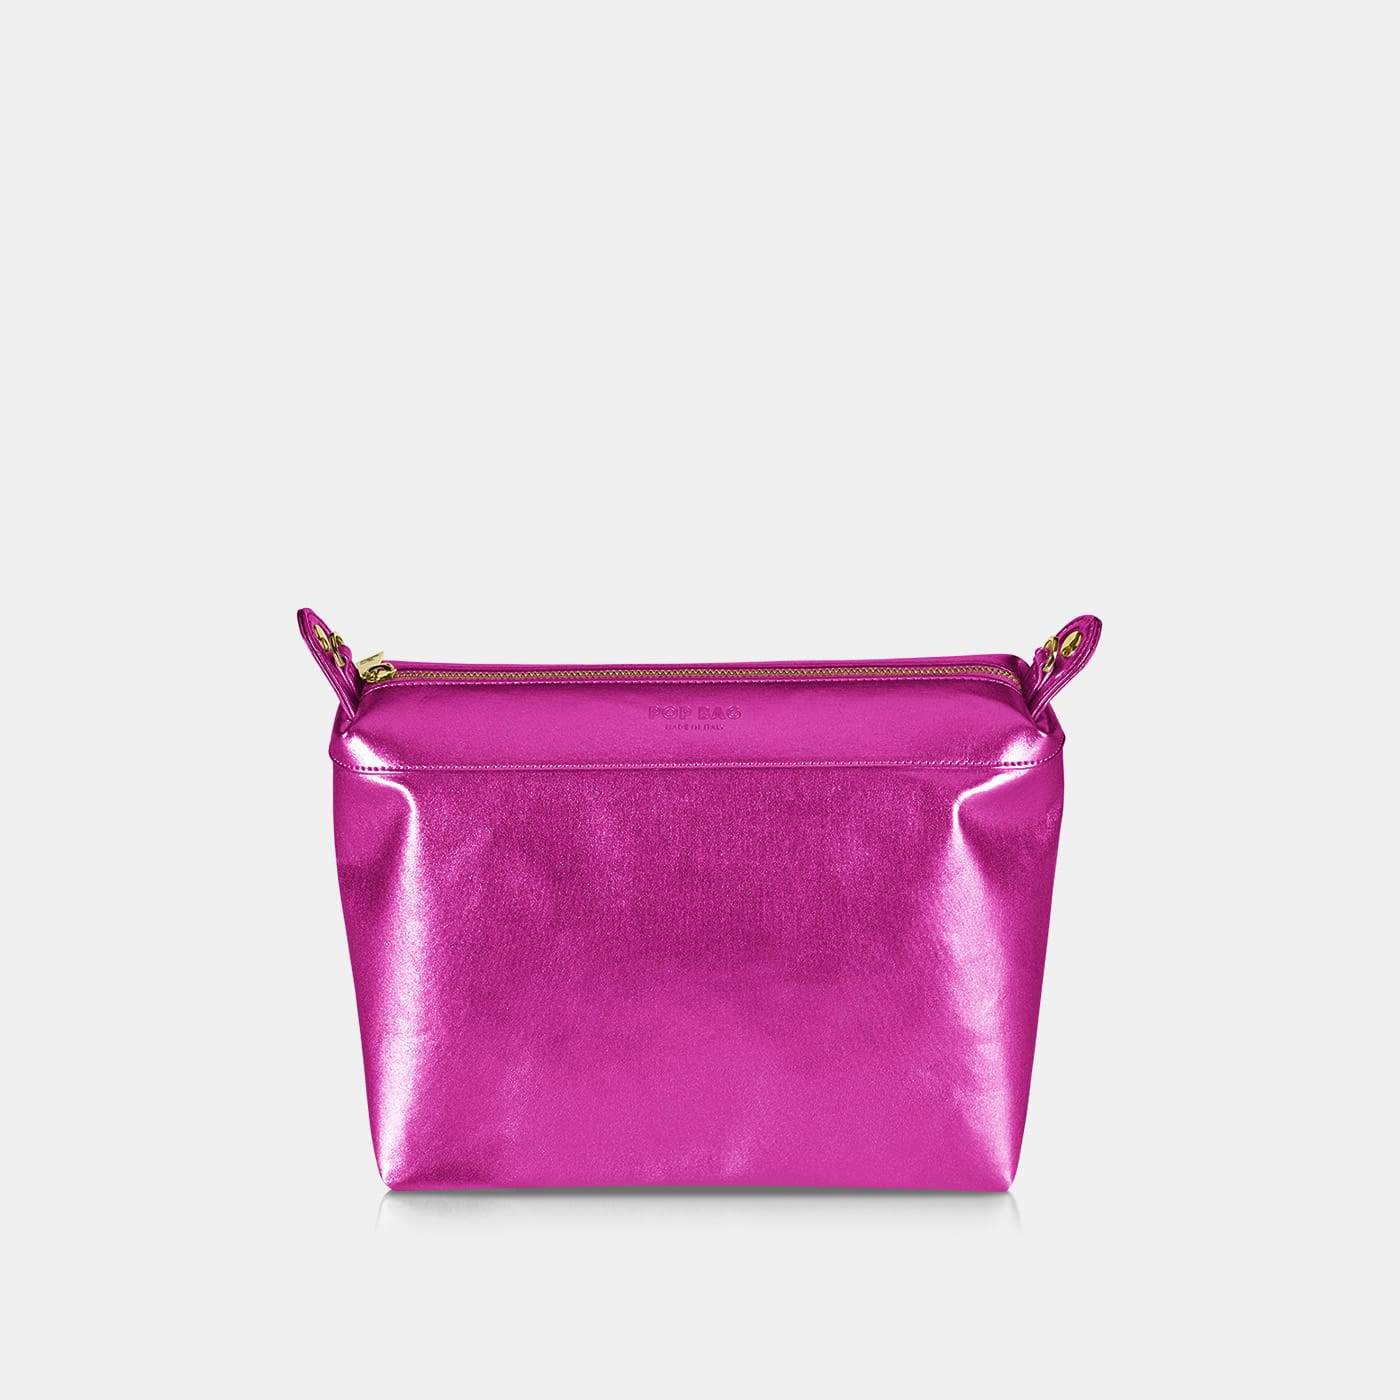 Pop Rase - Bag In Bag - Fuchsia Metal - Small